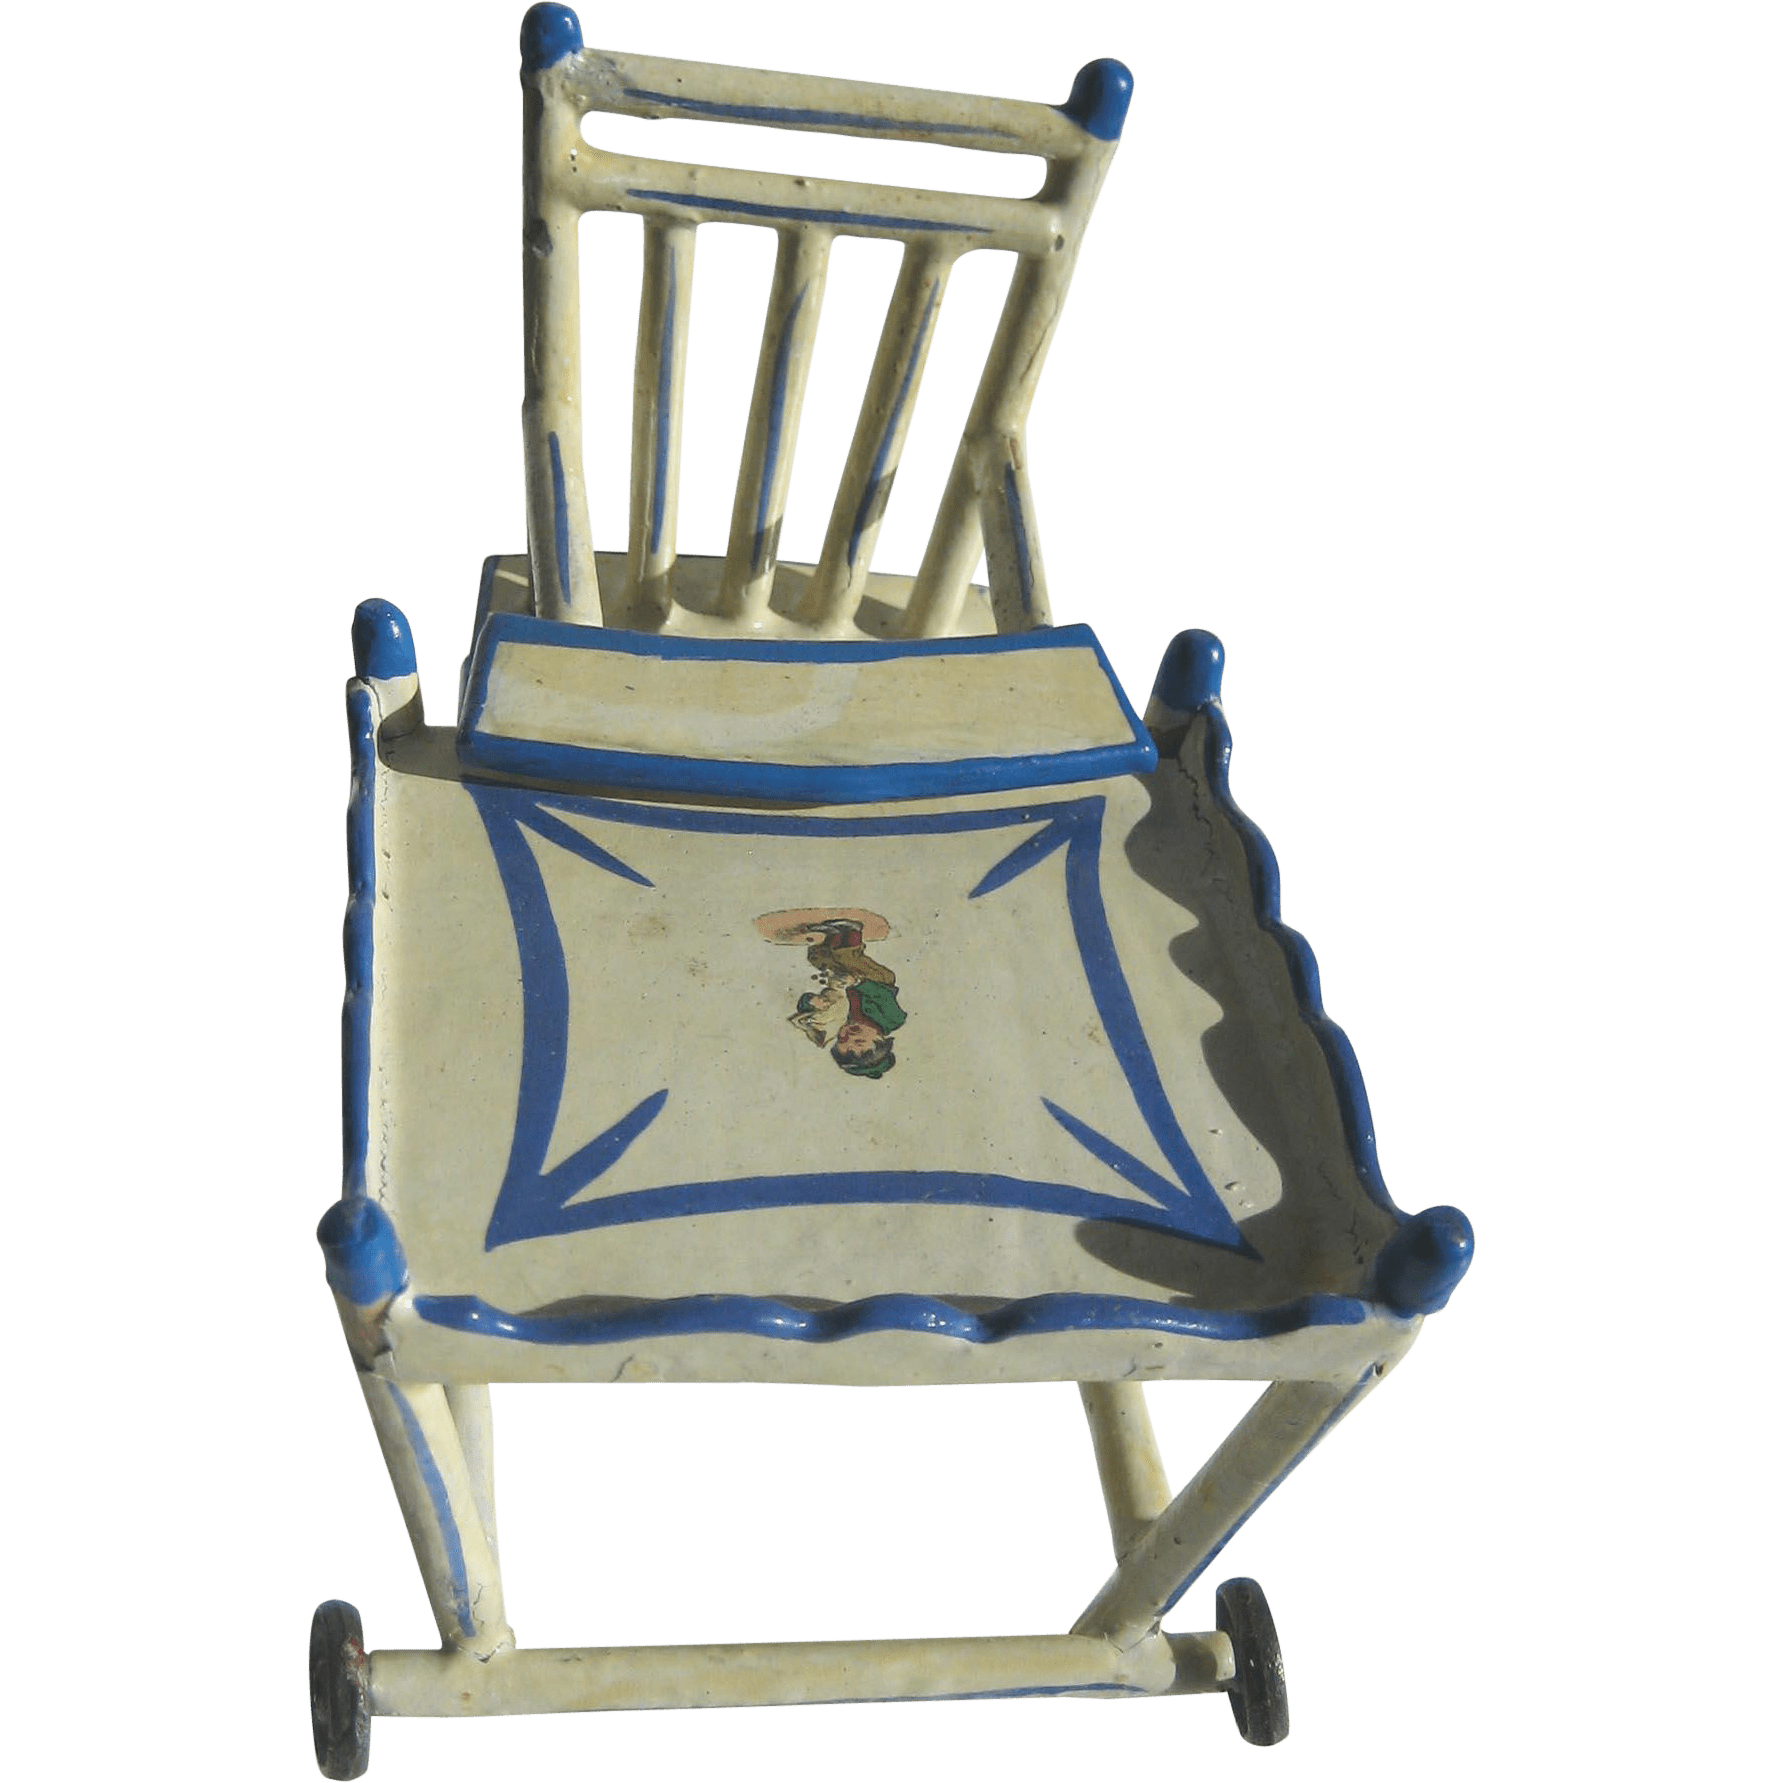 Mini Folding Chair Antique German Blue White Wood Small Miniature Doll